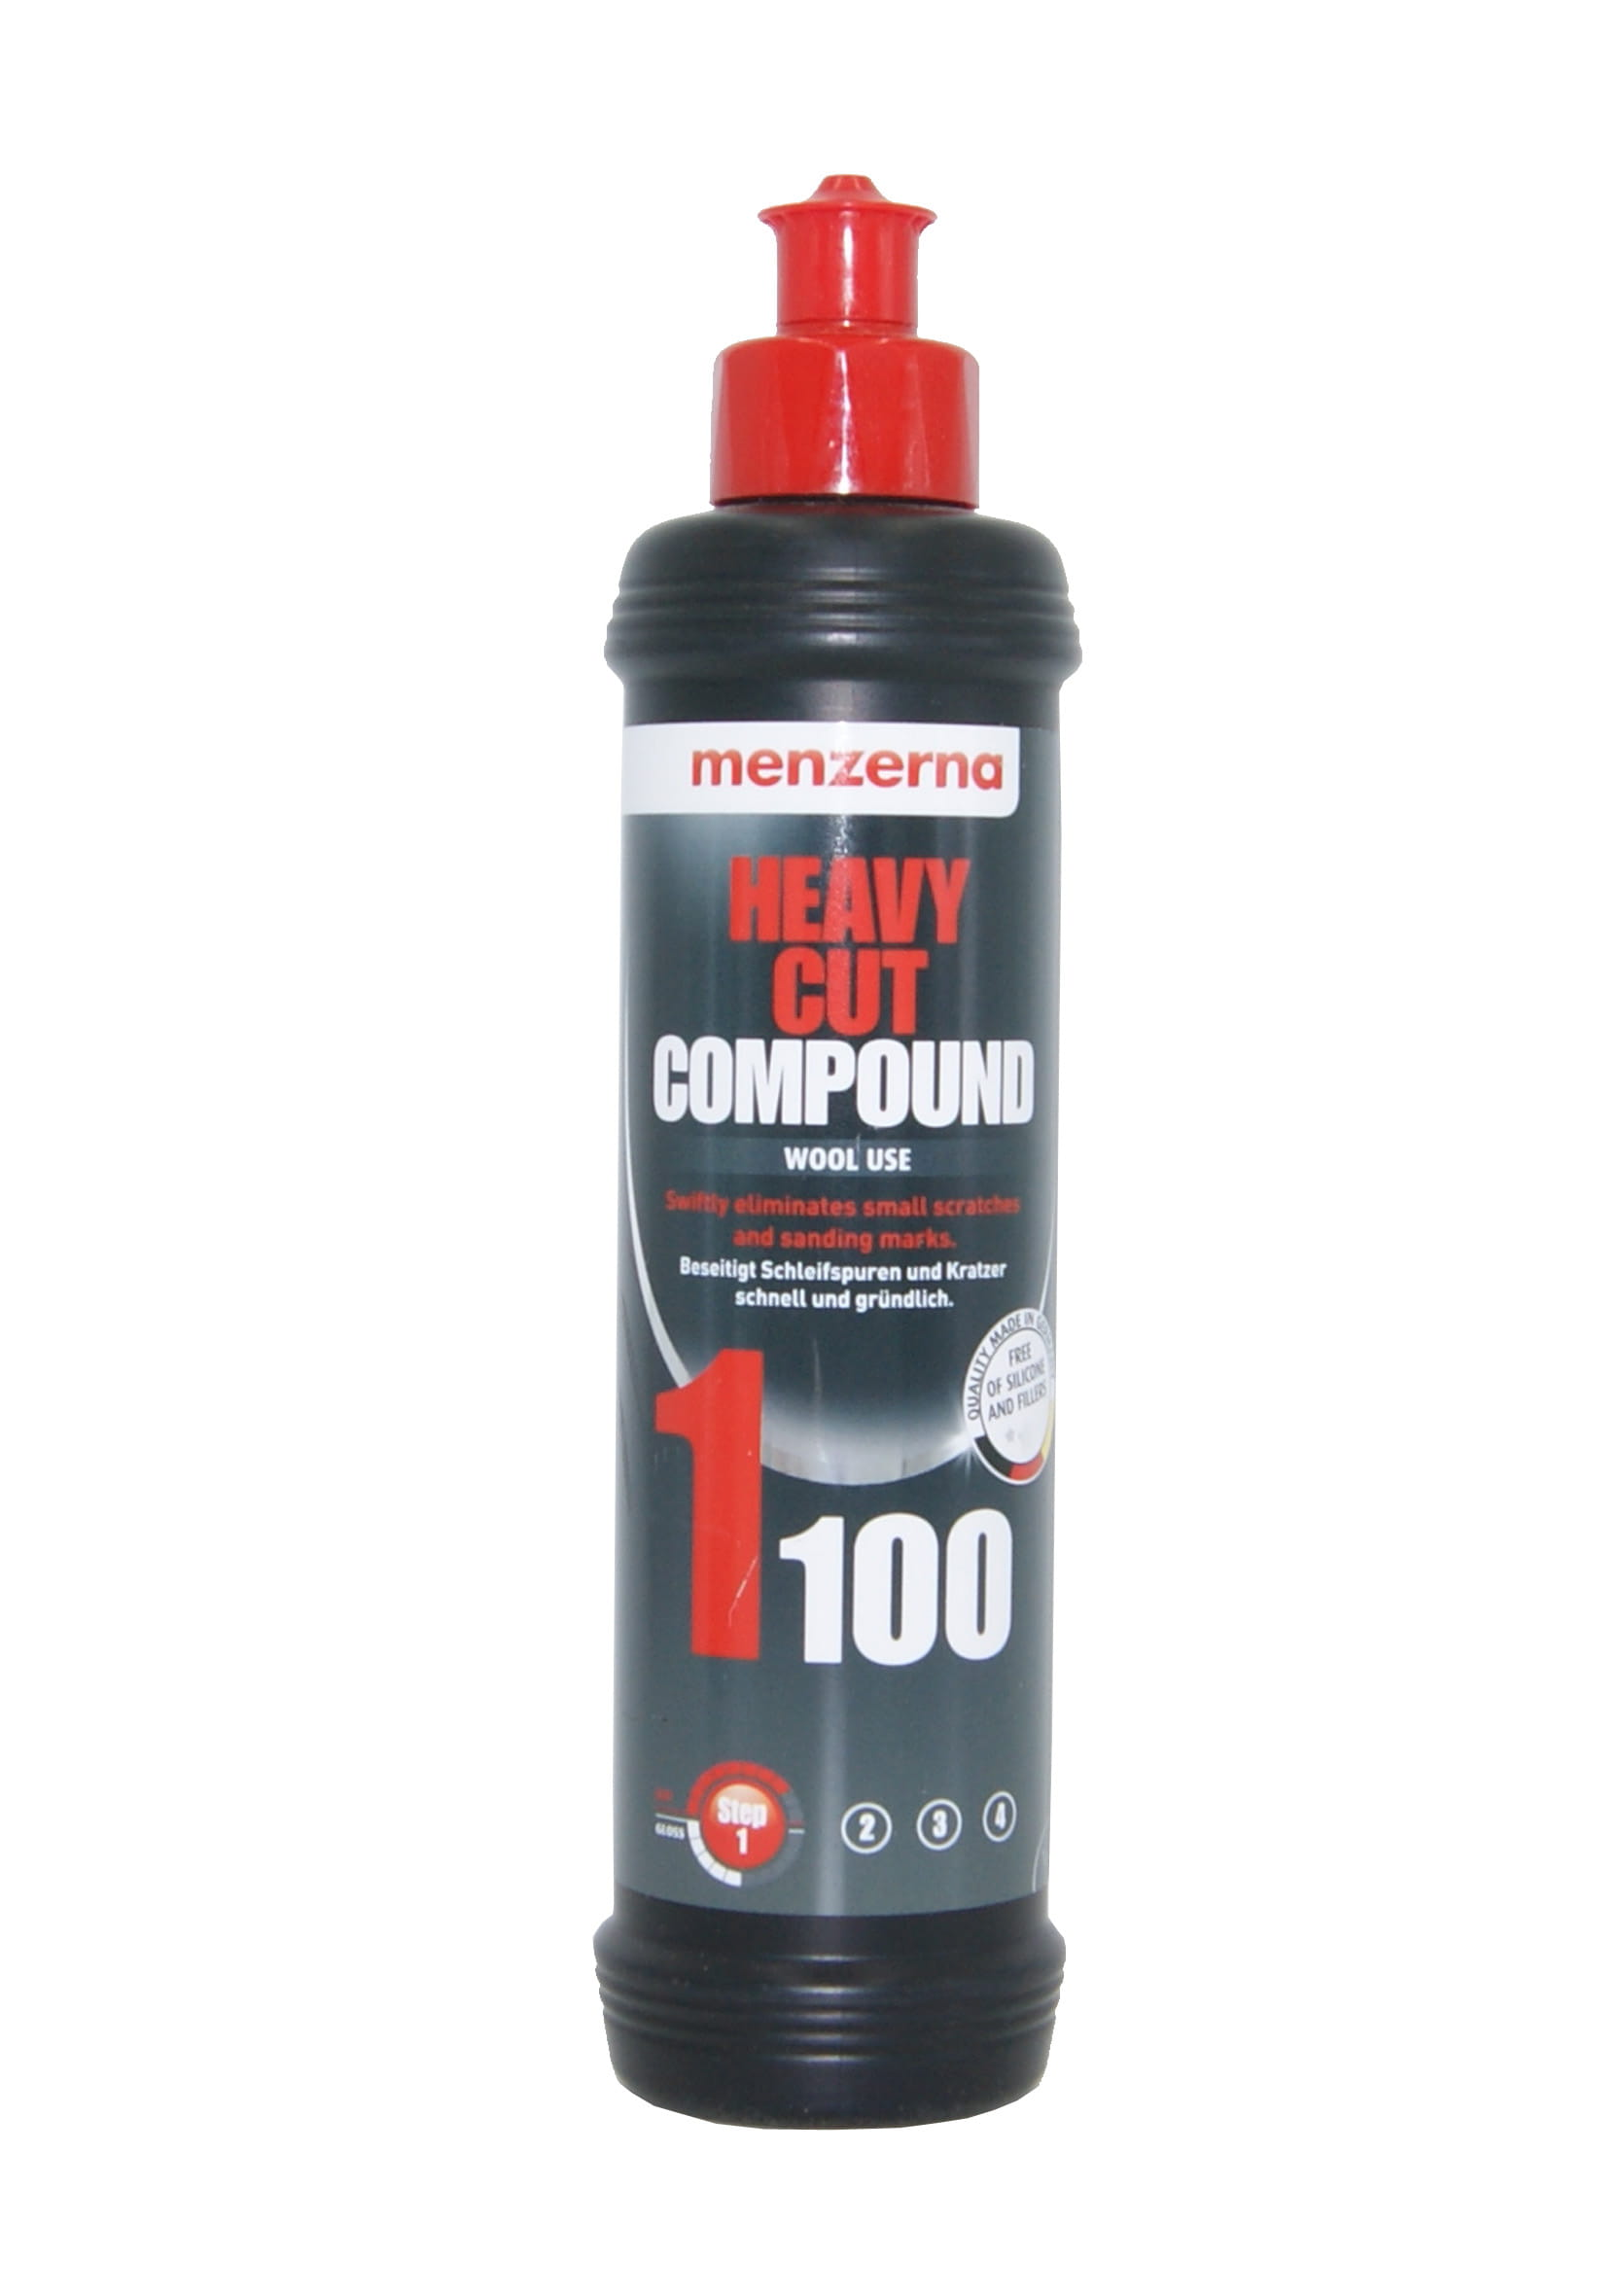 Menzerna 1100 Heavy Cut Compound 250ml Pasta Mocnościerna na Futro Polerskie